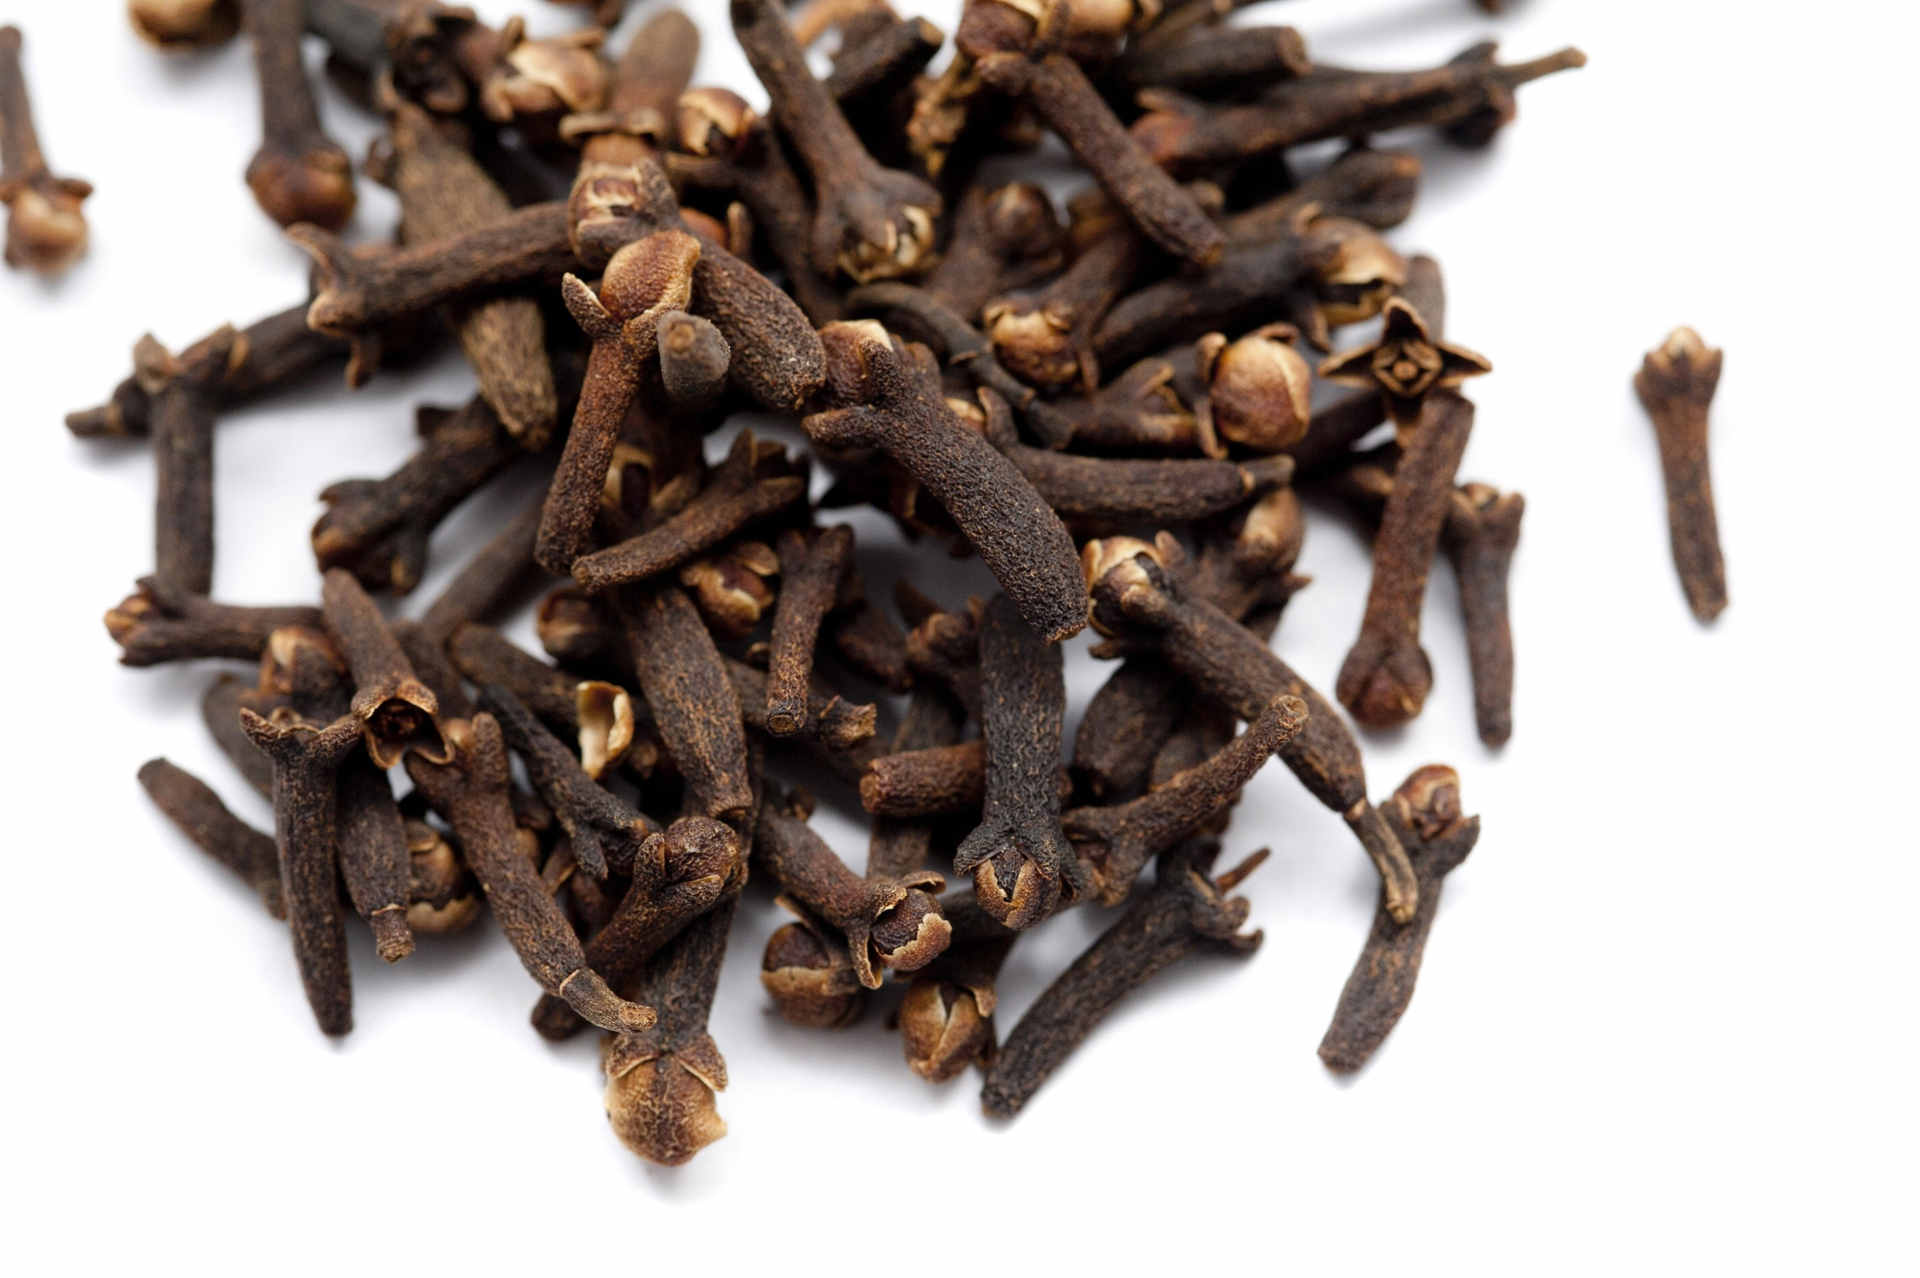 Chomp cloves to treat sore throat